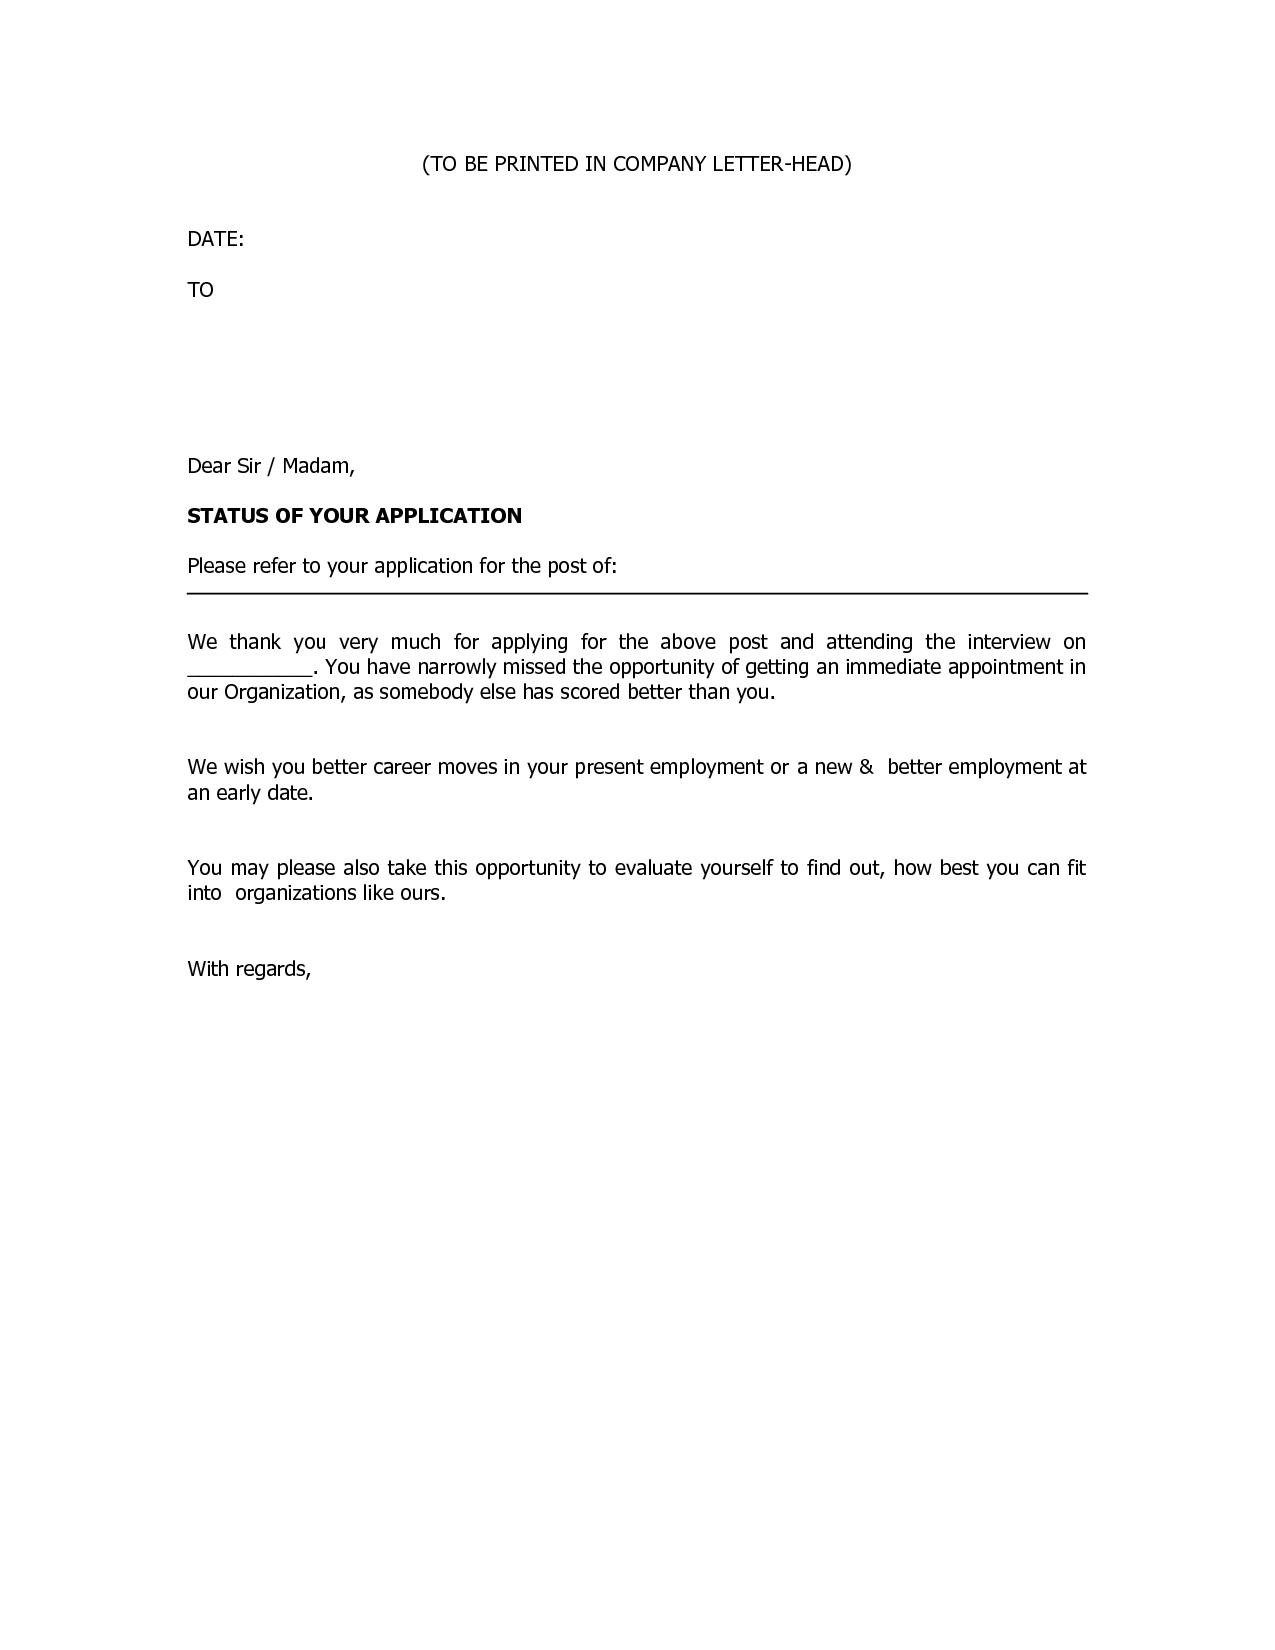 How to Decline a Vendor Proposal with Business Rejection Letter Sample